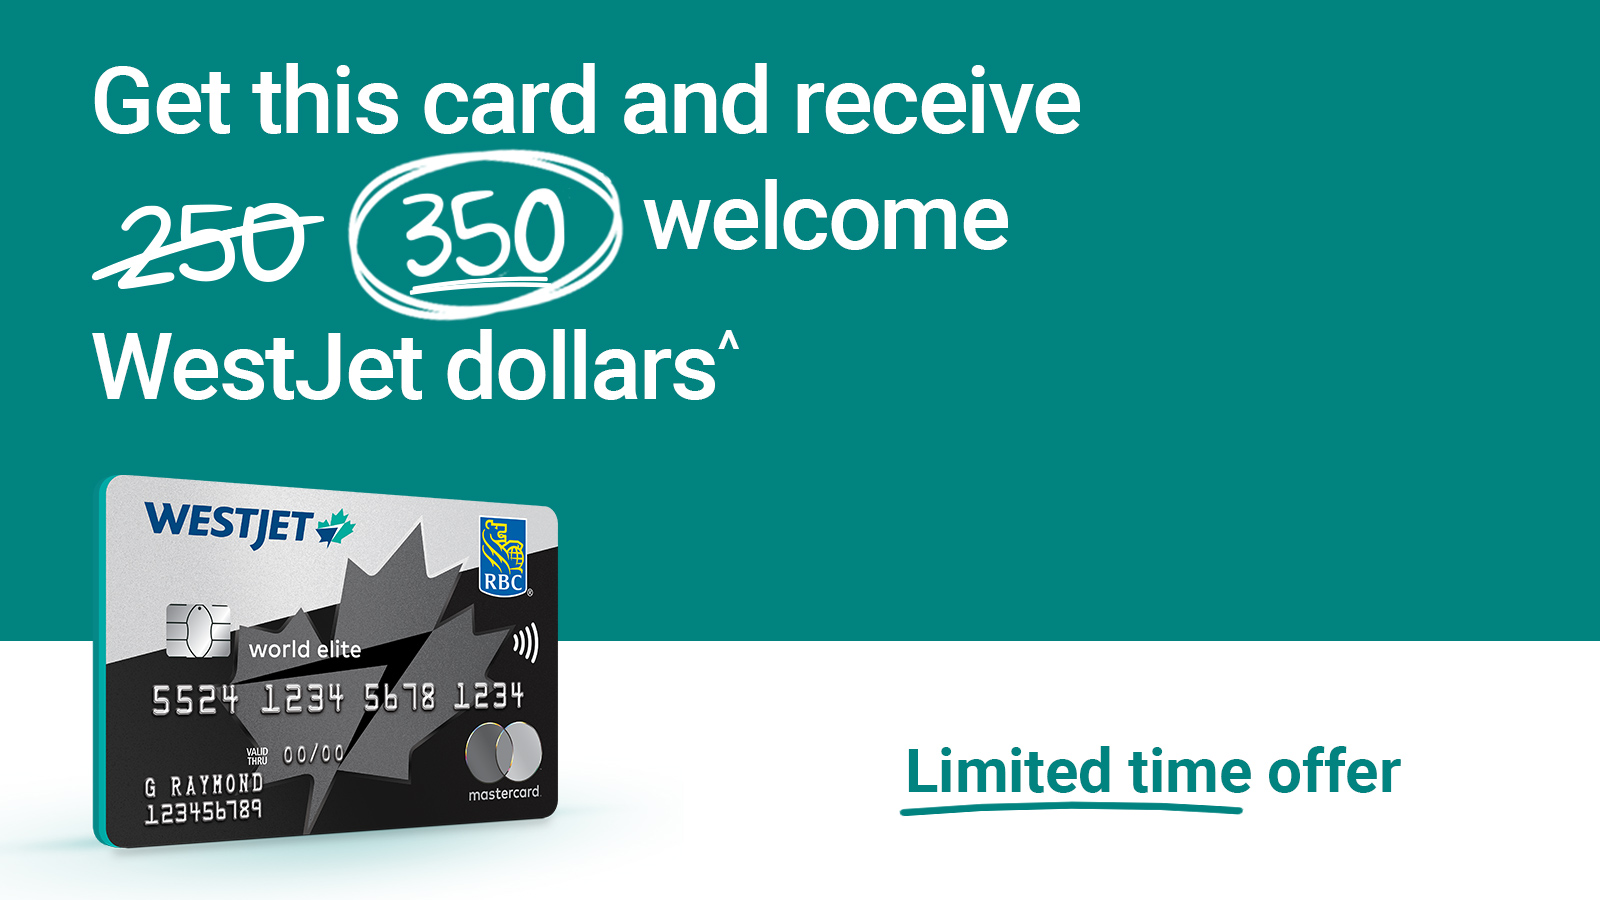 Get the WestJet RBC World Elite Mastercard and receive 350 welcome WestJet dollars. Limited time only. Terms and conditions apply.